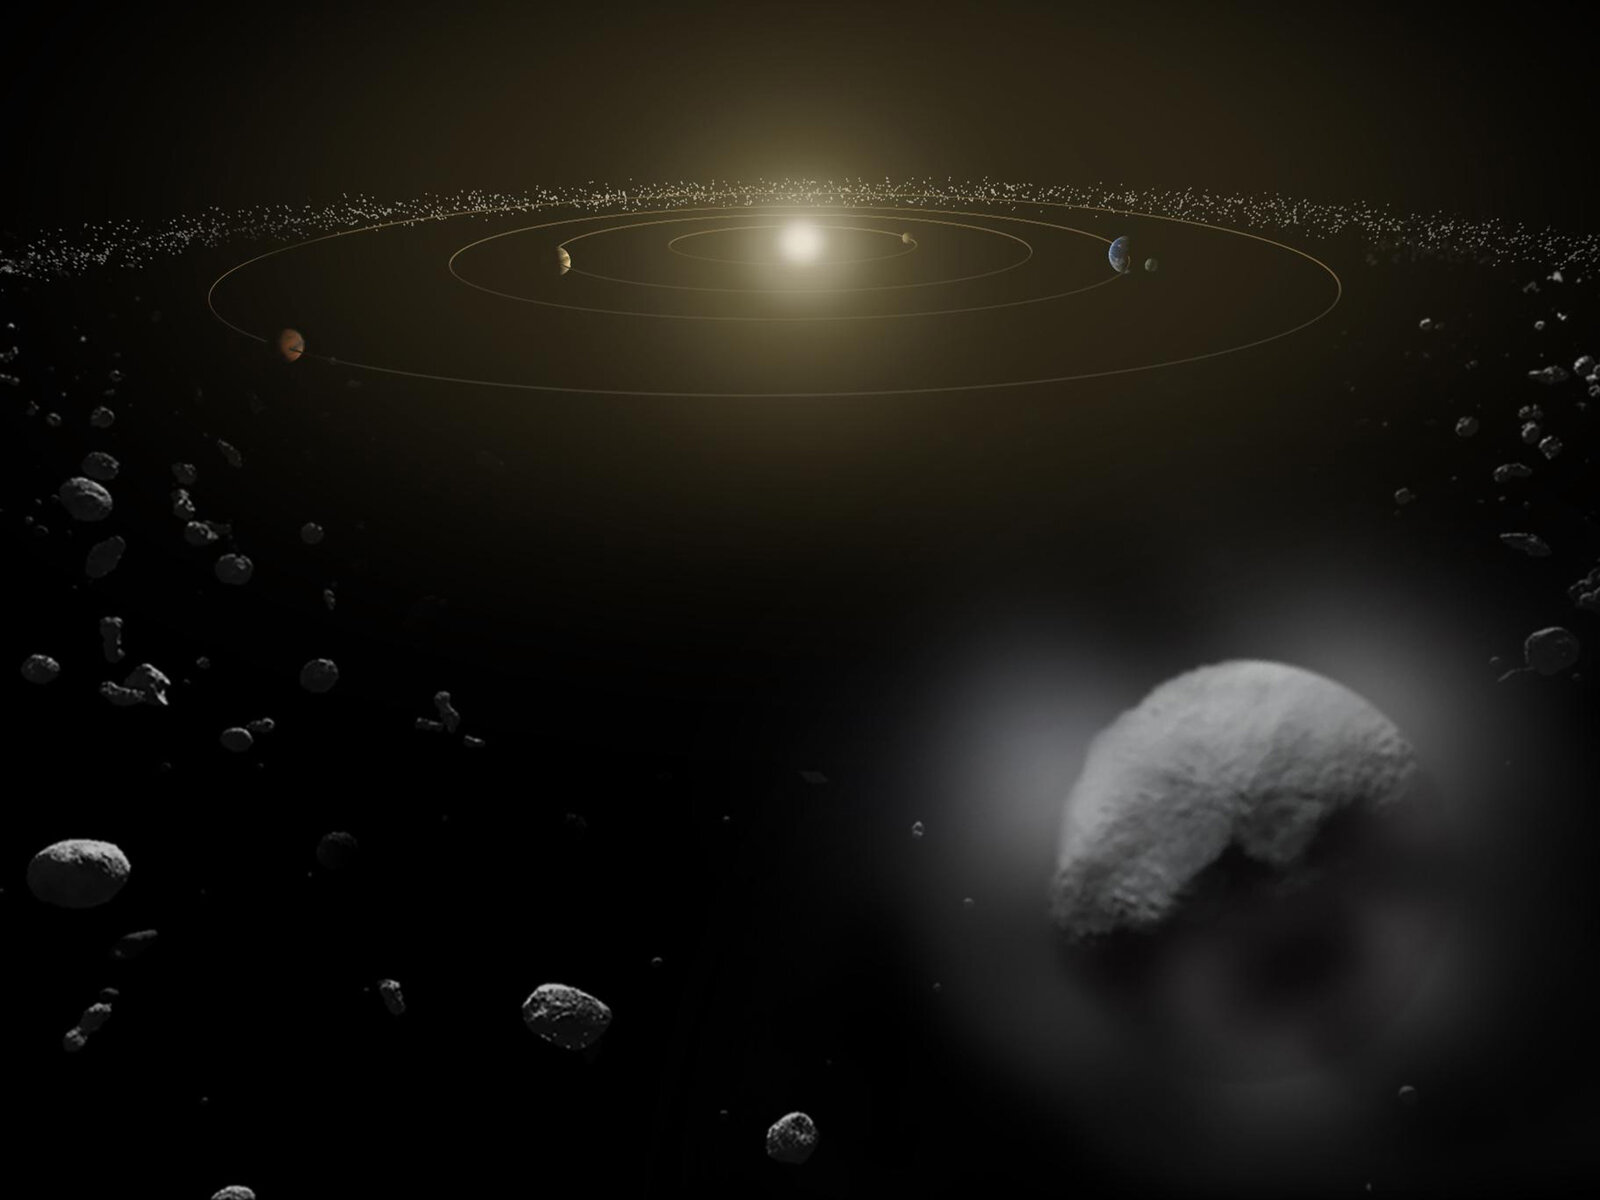 Dwarf planet Ceres is seen in the main asteroid belt, where it resides well away from Earth. NASA is hoping to quell online rumors that a massive near-Earth asteroid is due to hit us next month.